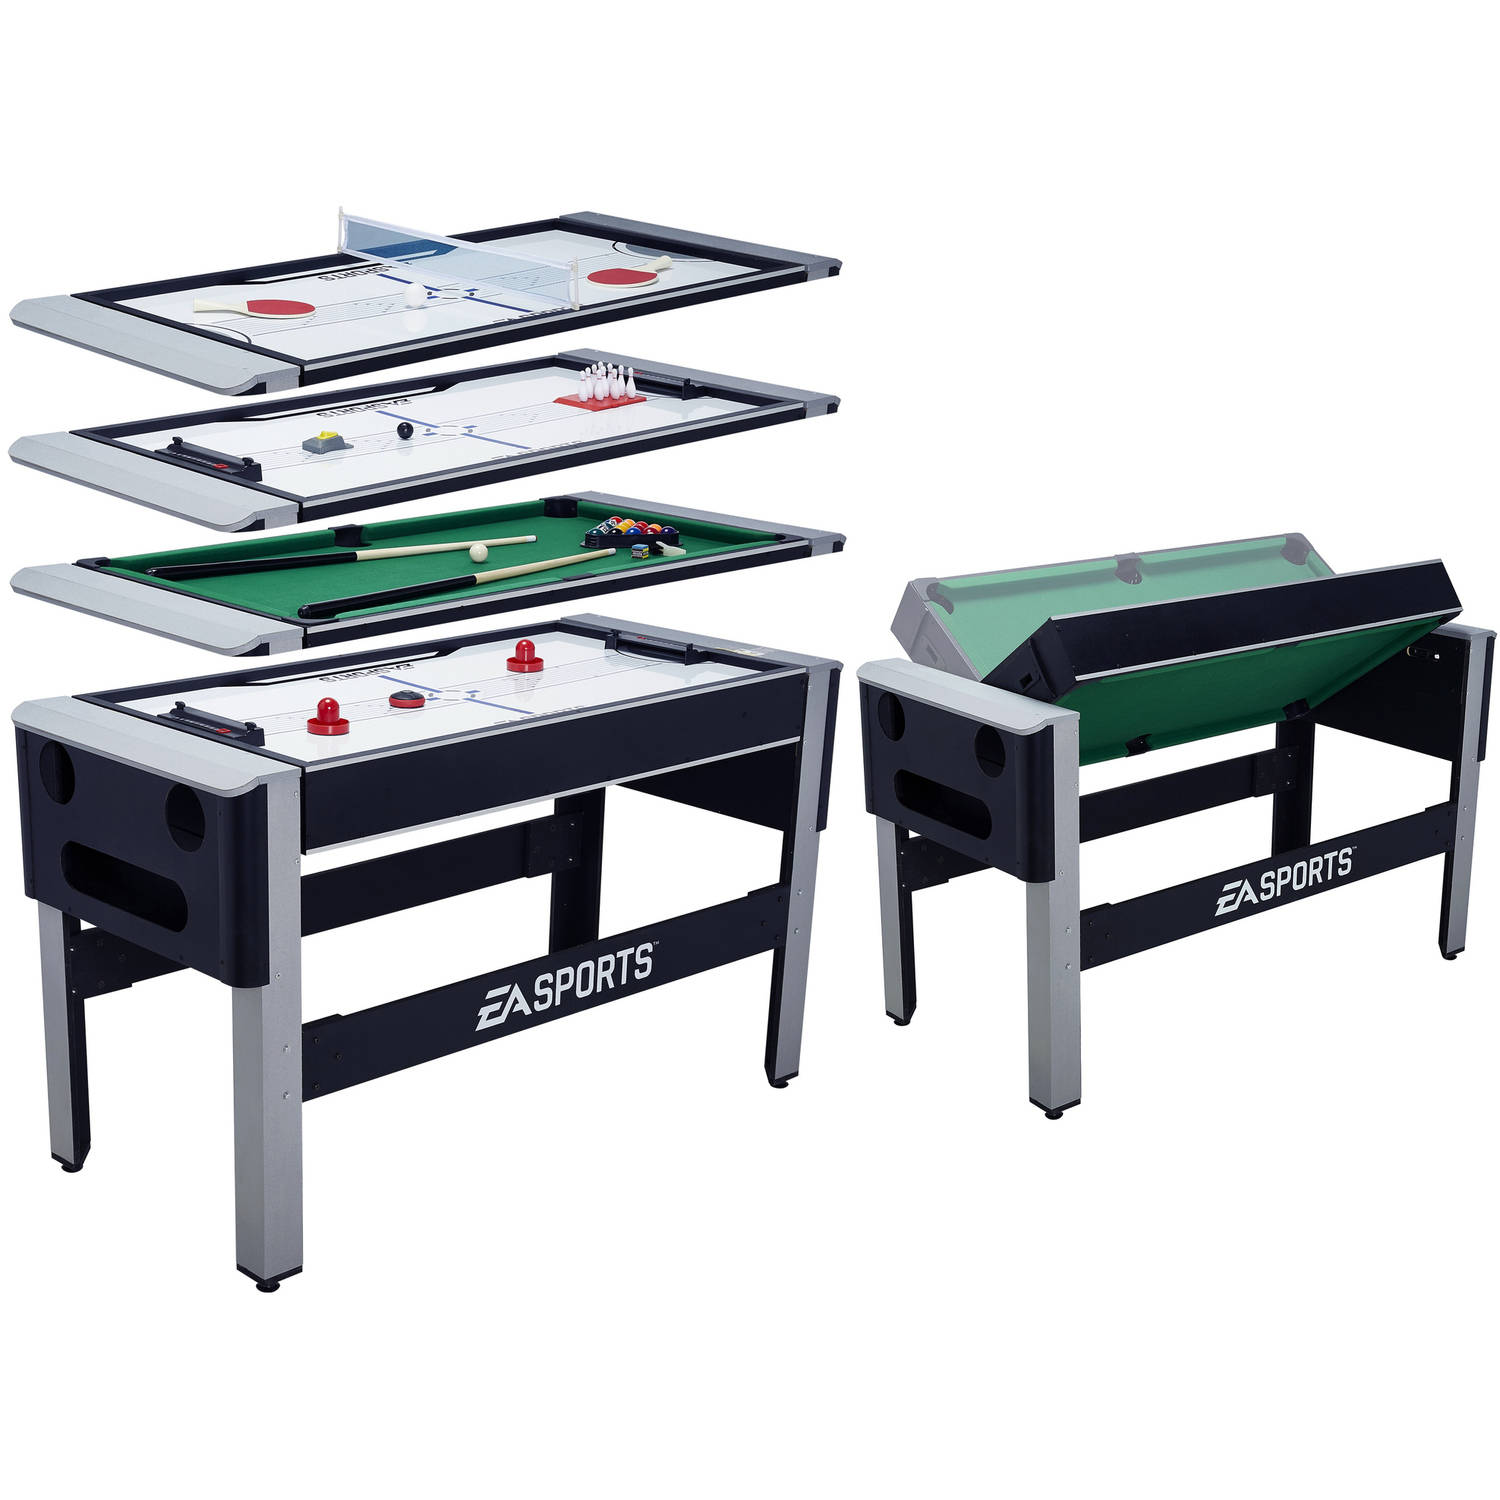 EA SPORTS 54 Inch 4 In 1 Swivel Combo Table   4 Games With